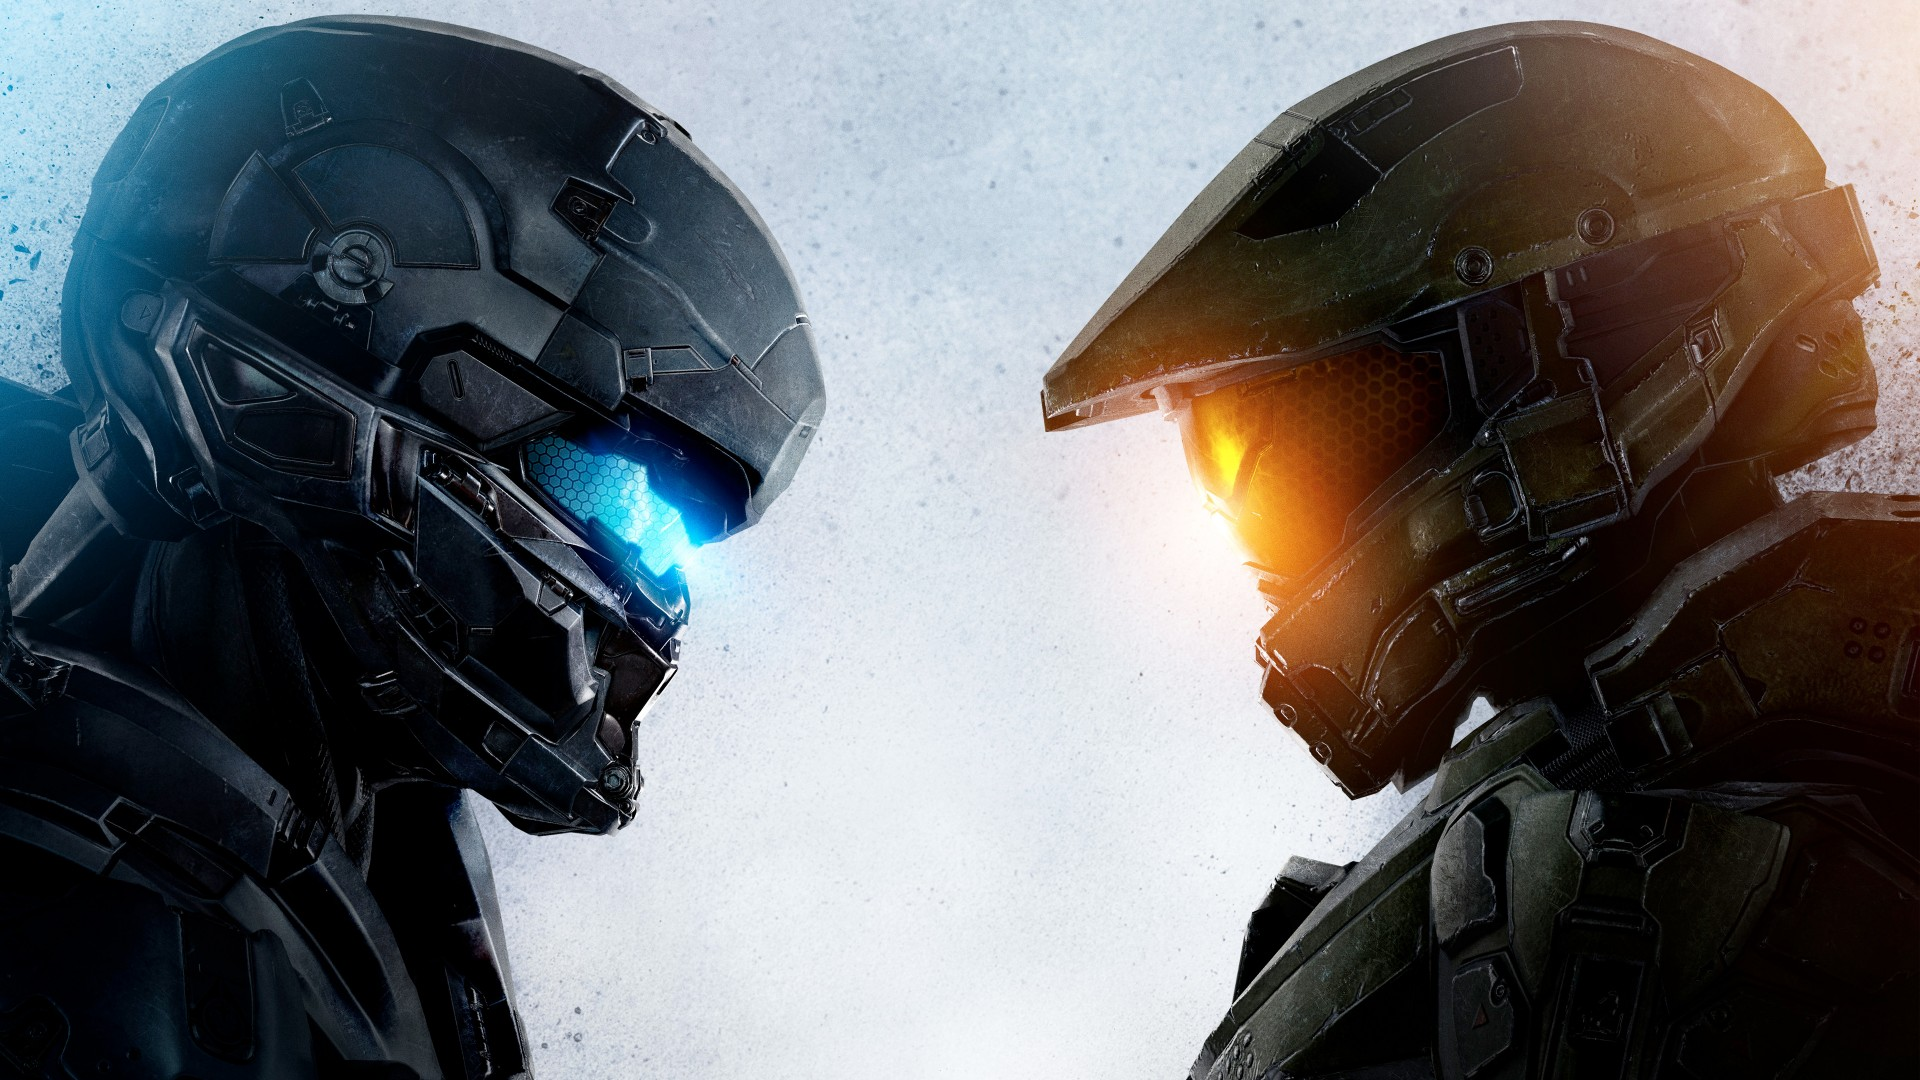 Download Desktop 3d Wallpapers 2015 Halo 5 Guardians Wallpapers Hd Wallpapers Id 14661